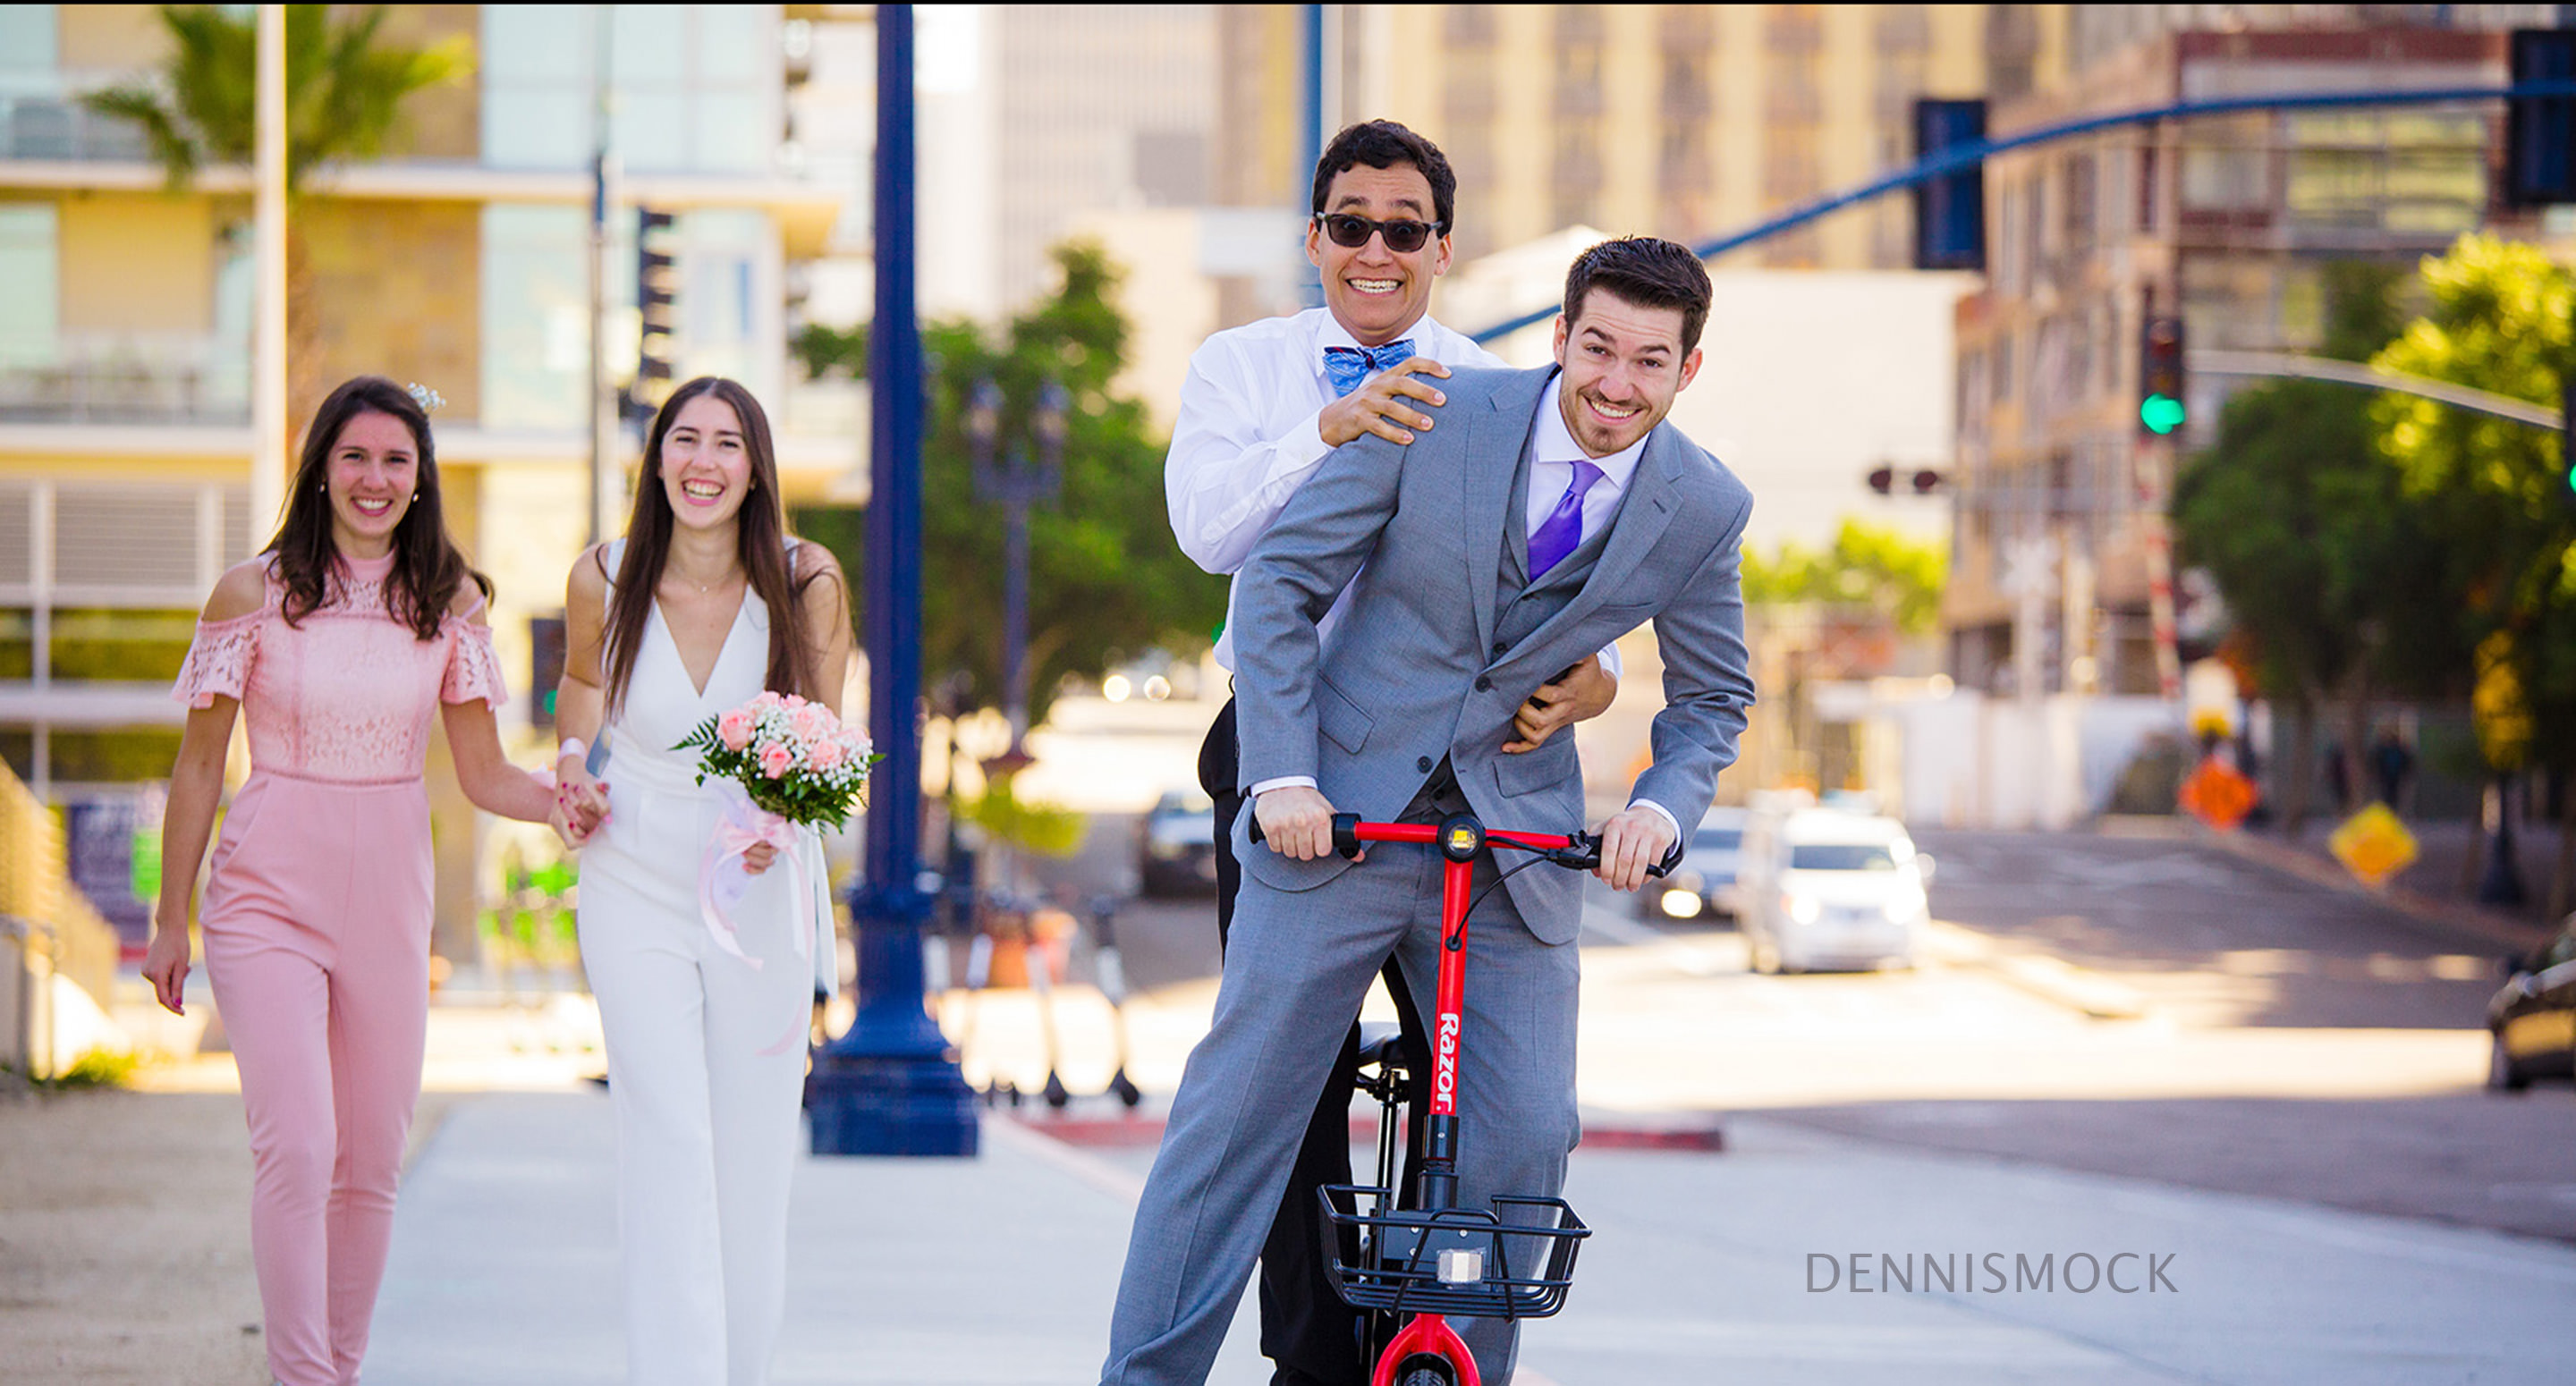 San Diego wedding photographers documenting your day